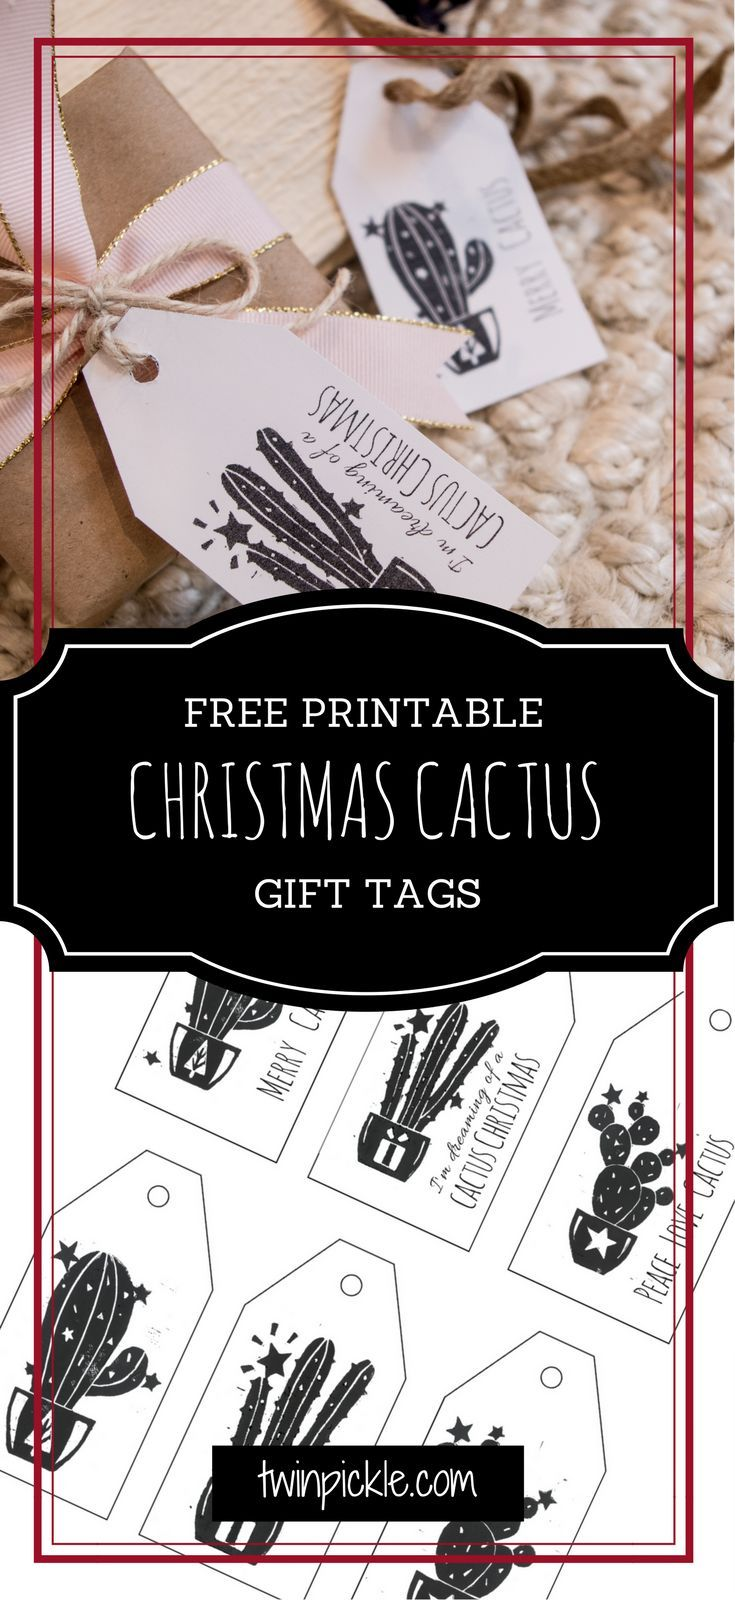 I've been exploring linoleum block printing and have created some festive cactus designs for this year's Christmas cards. In the process I've made some printable Christmas cactus gift tags which you can download for free! Have a very merry cactus Christmas :) #craft #holiday #Christmas #gifttags #printable